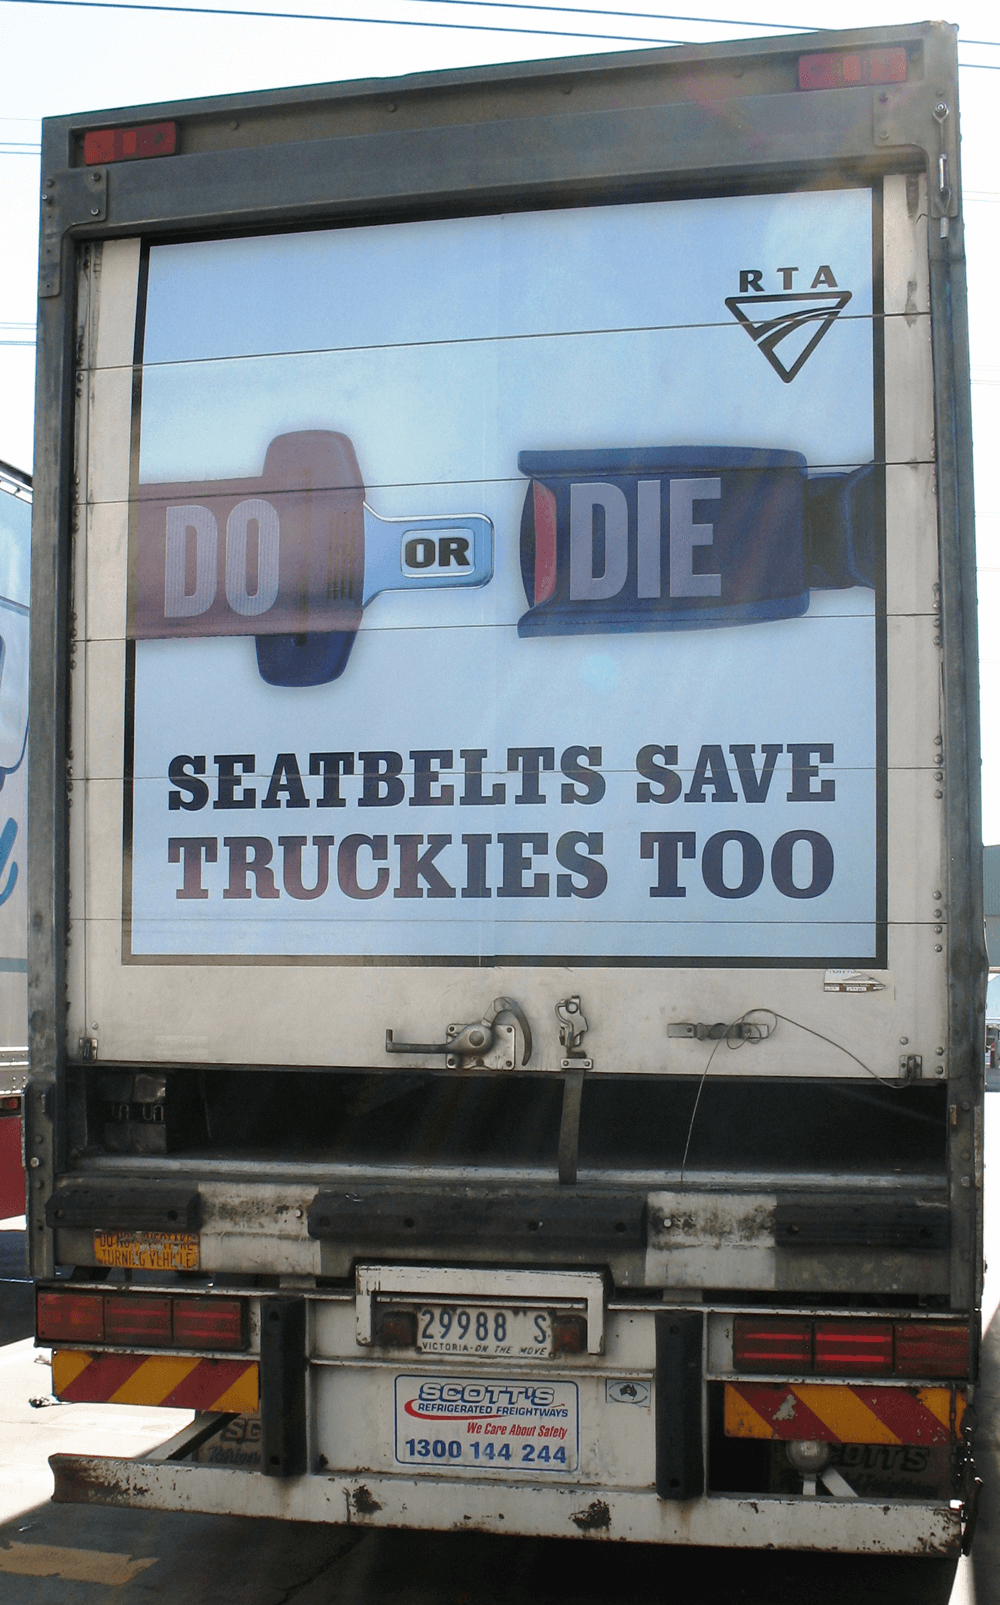 Truck advertising. RTA TruckBack Scotts pan - Seatbelts Save Truckies Too RMS TfNSW